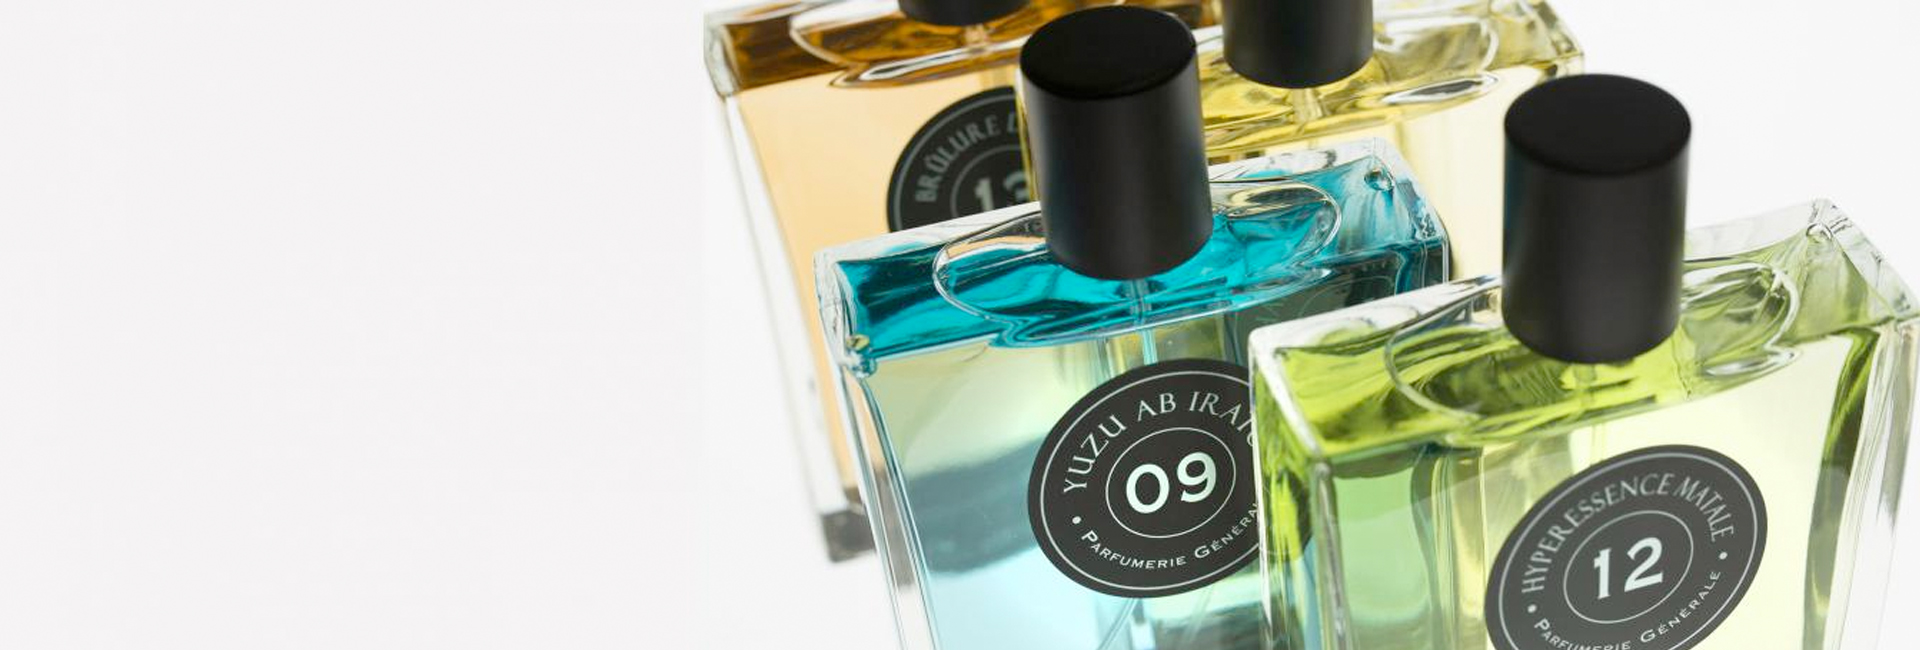 collection-numeraire-parfumerie-generale